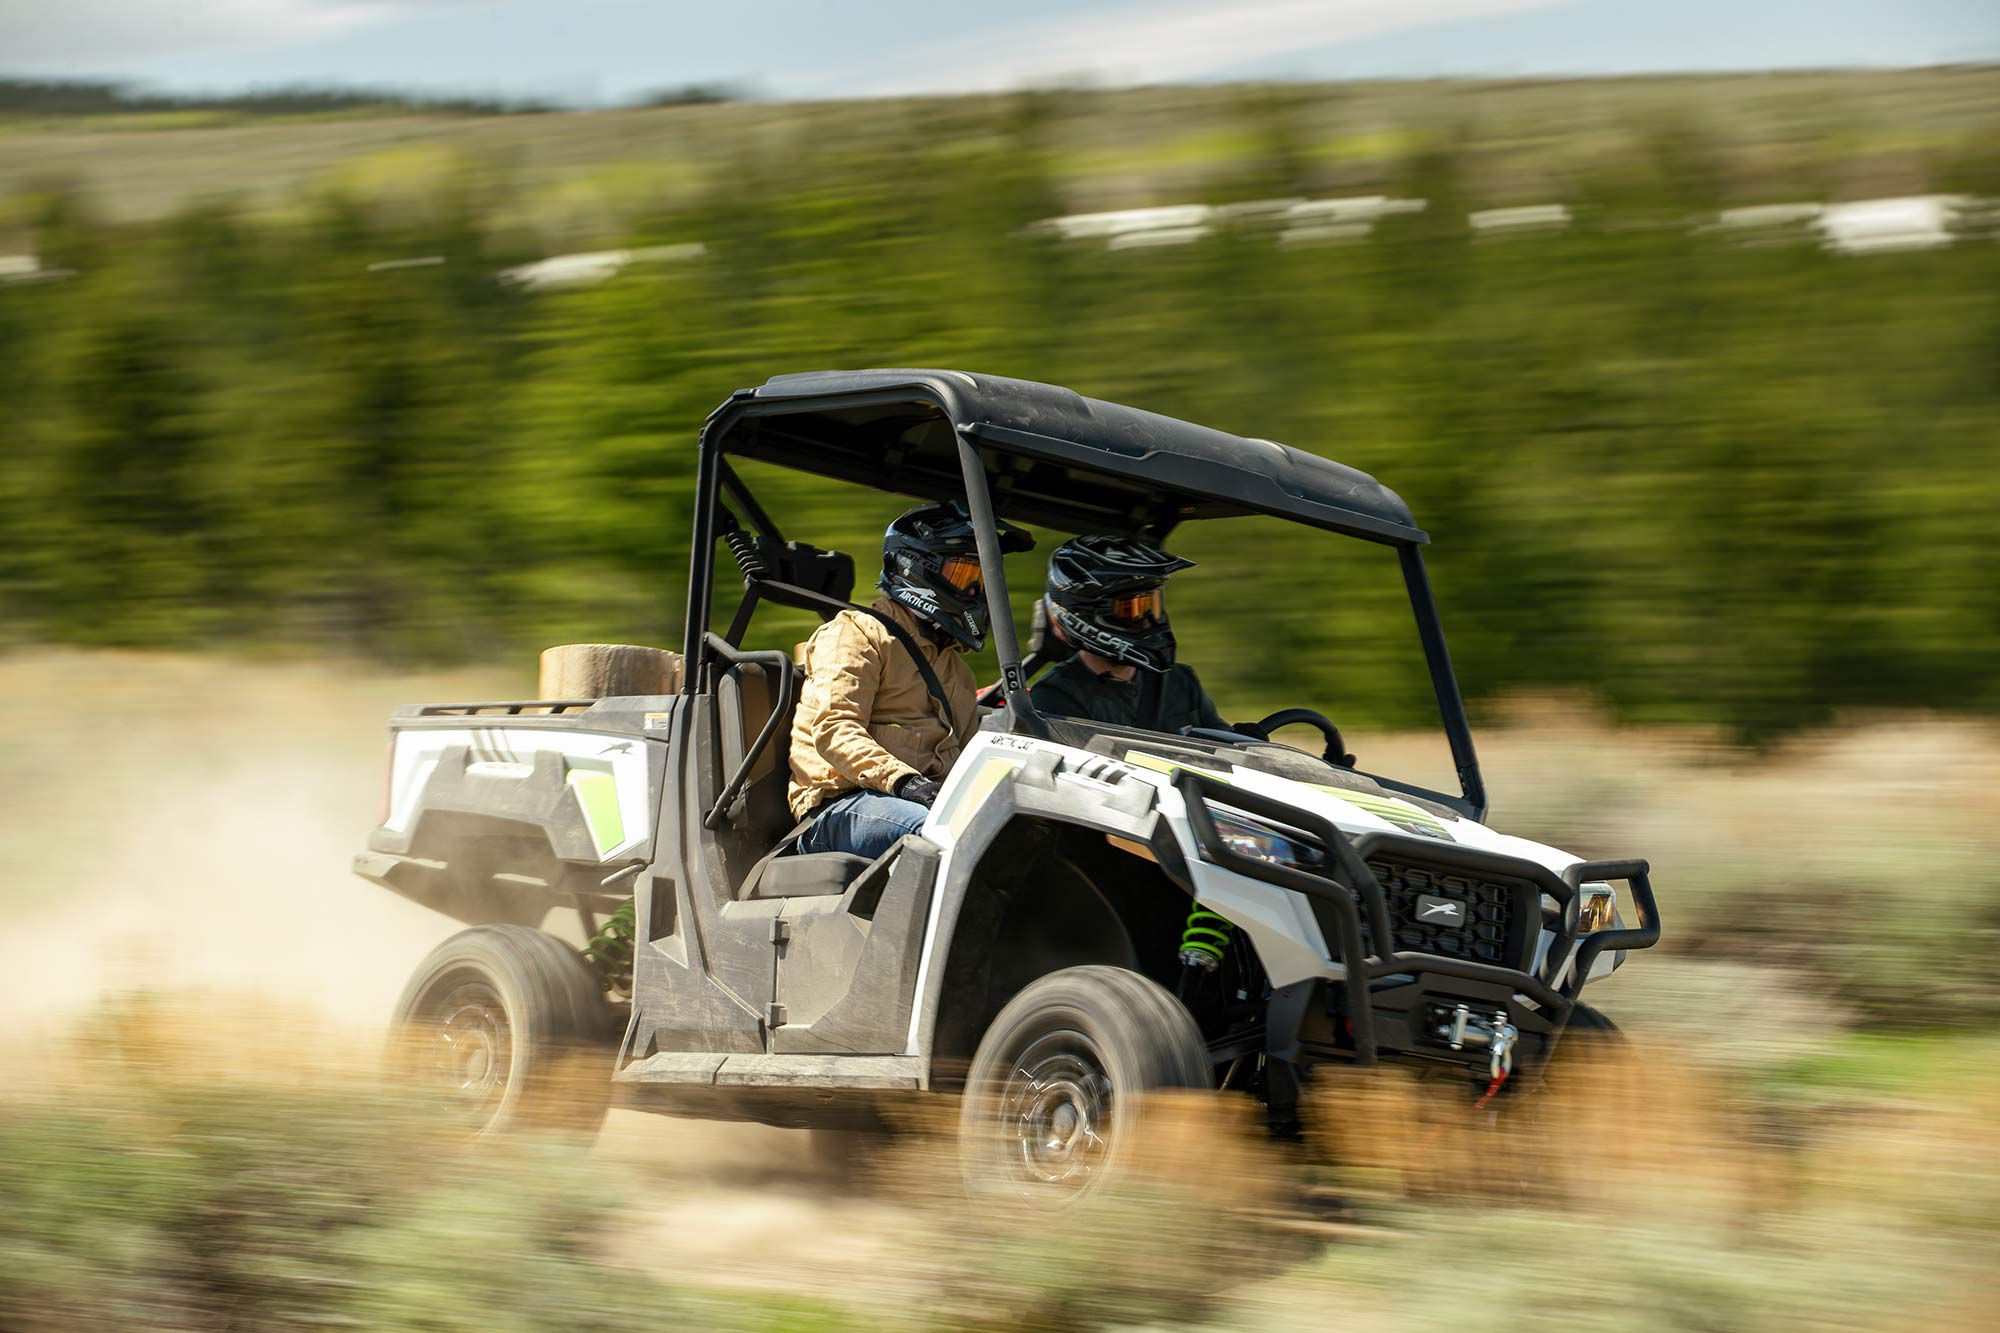 The 2021 Arctic Cat Prowler Pro at play.